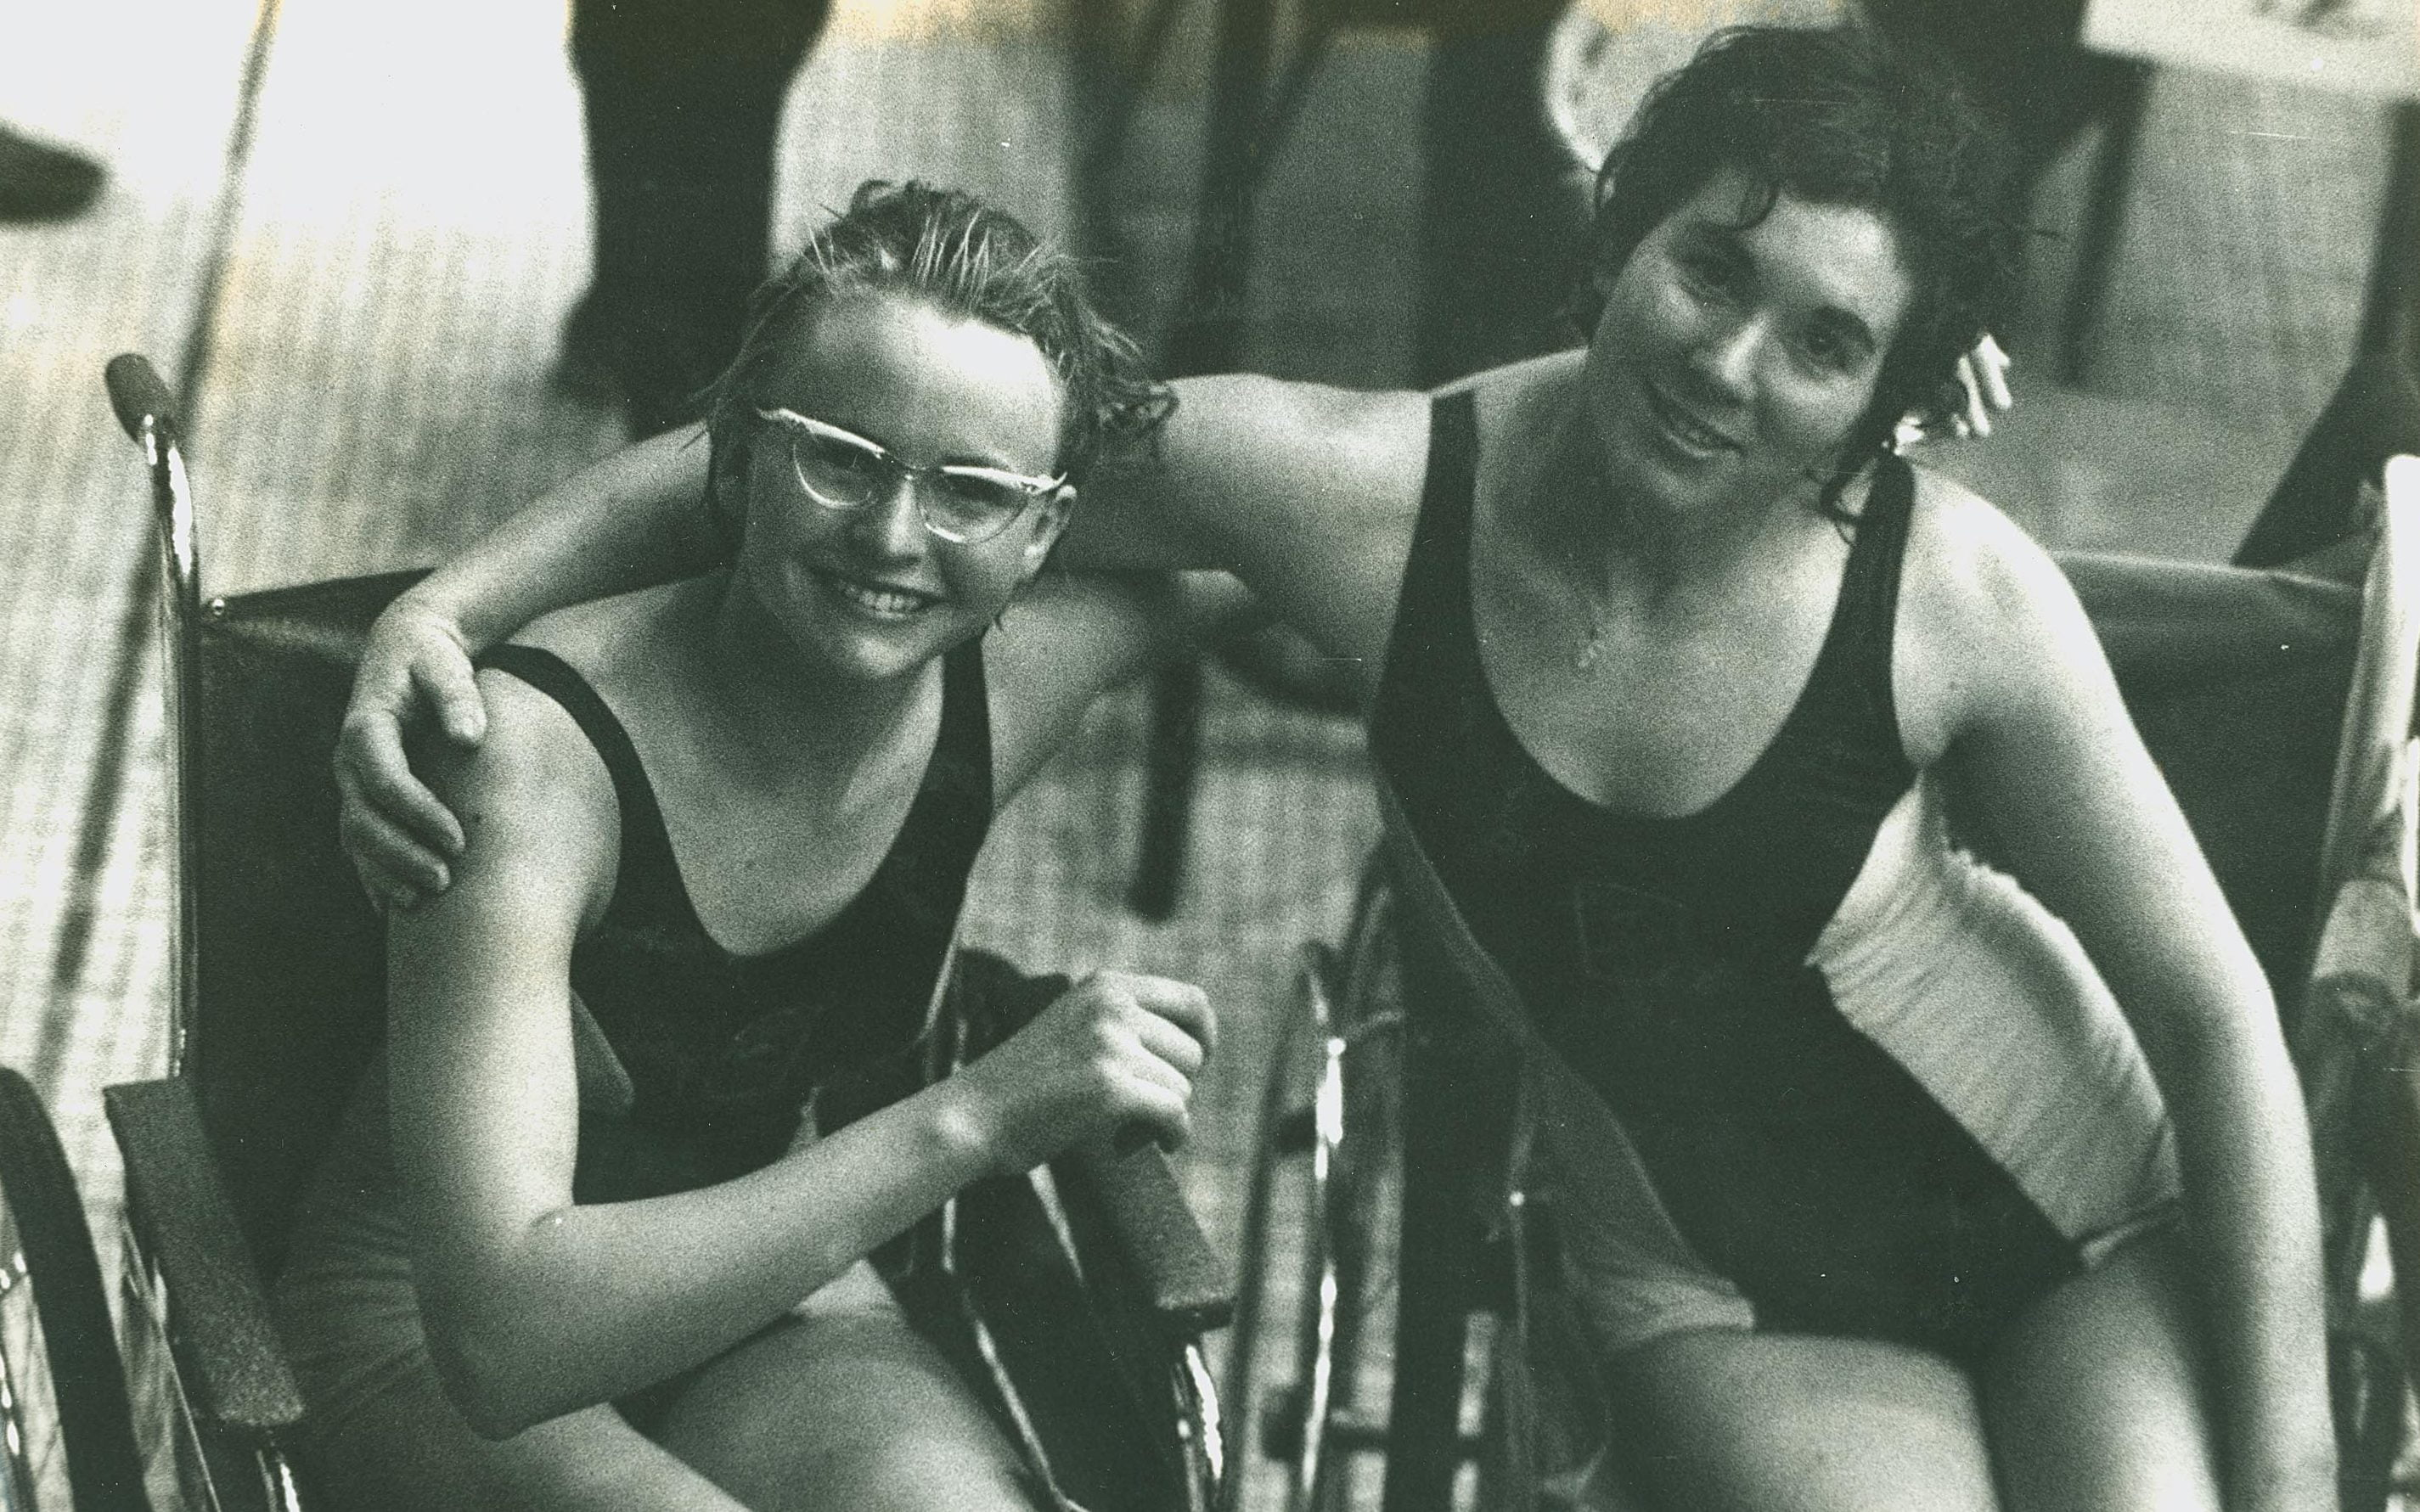 Paralympics Australia celebrates its history with launch of 'Paralympic Stories'